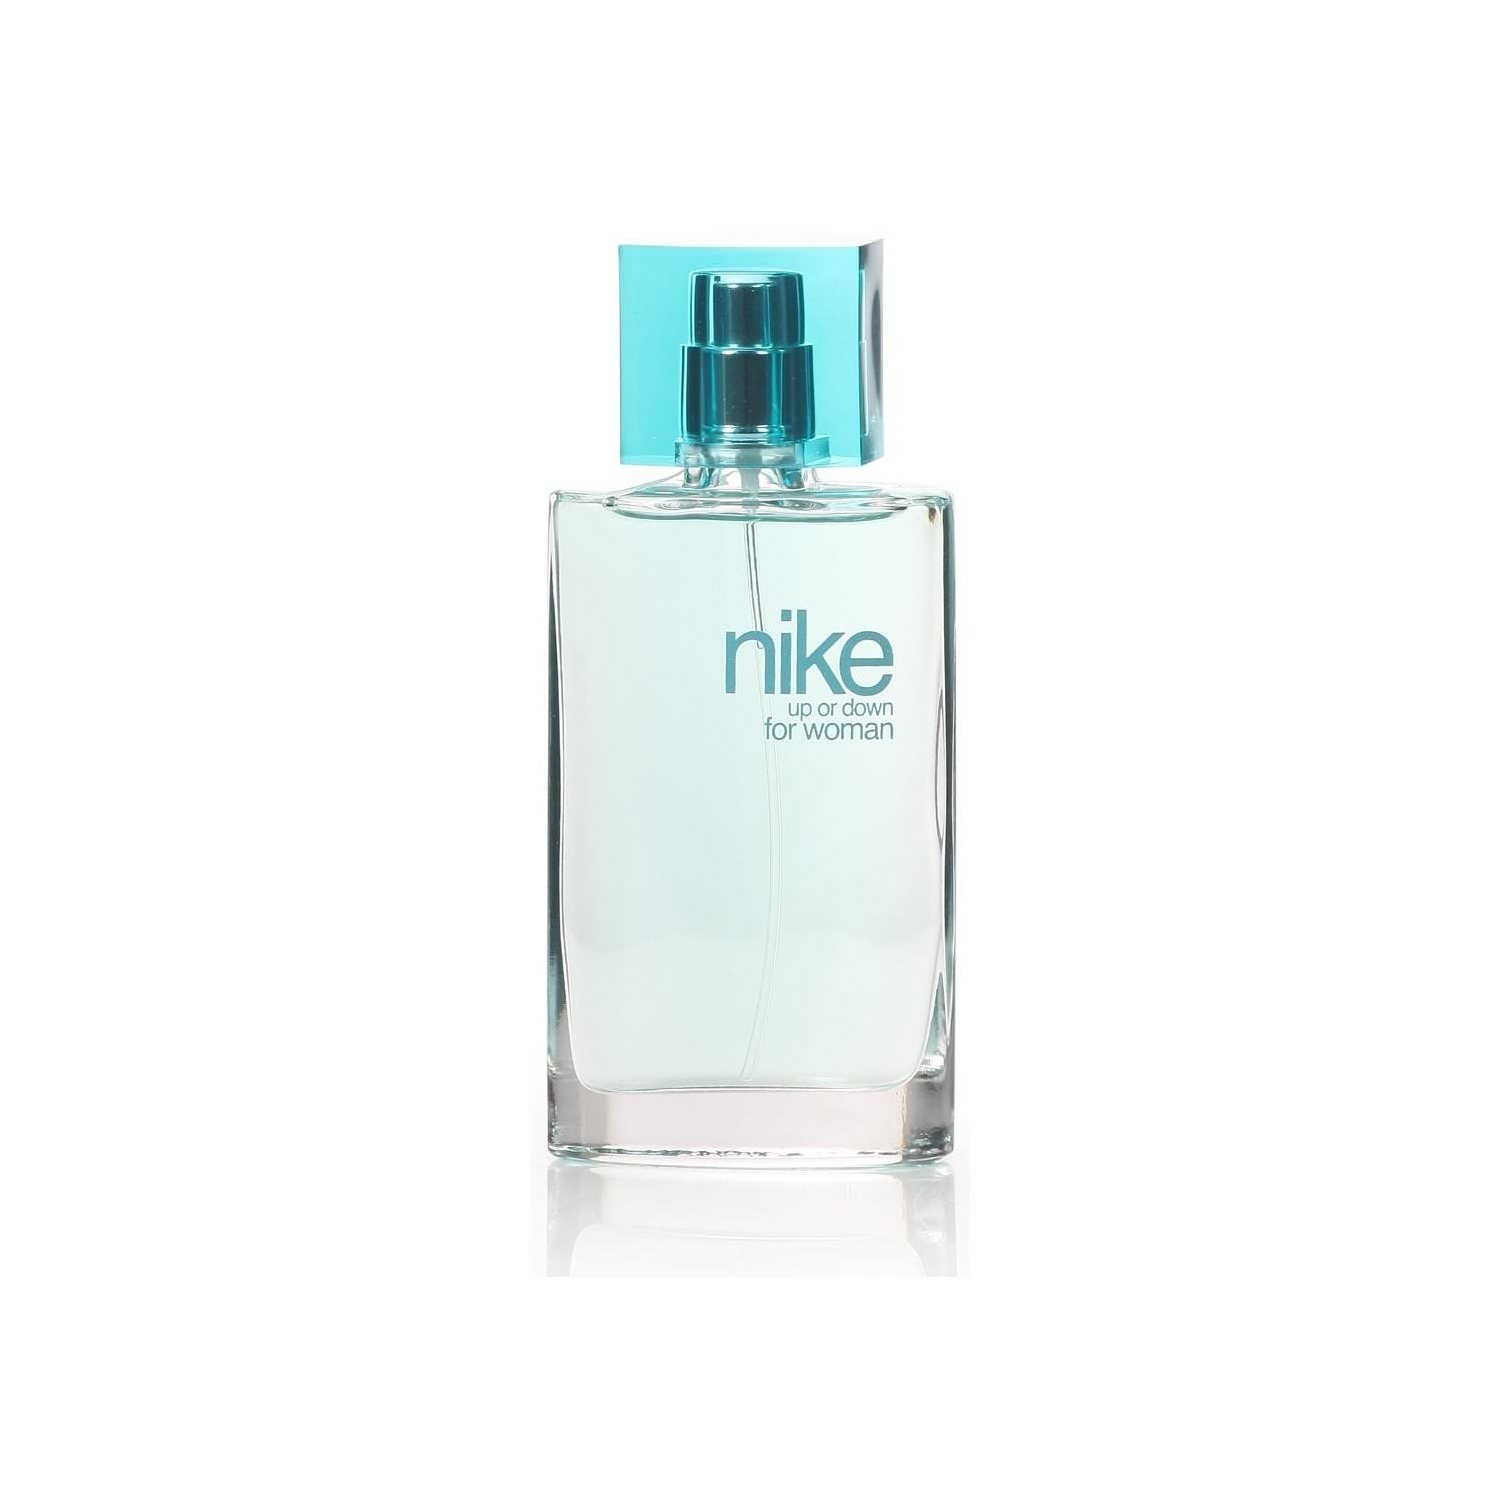 Eau De Toilette Buy Online At Best Prices In India Benetton B United Jeans Edt Man Parfum 100ml 100 Original Nike Up Or Down Perf For Women Blue 75ml